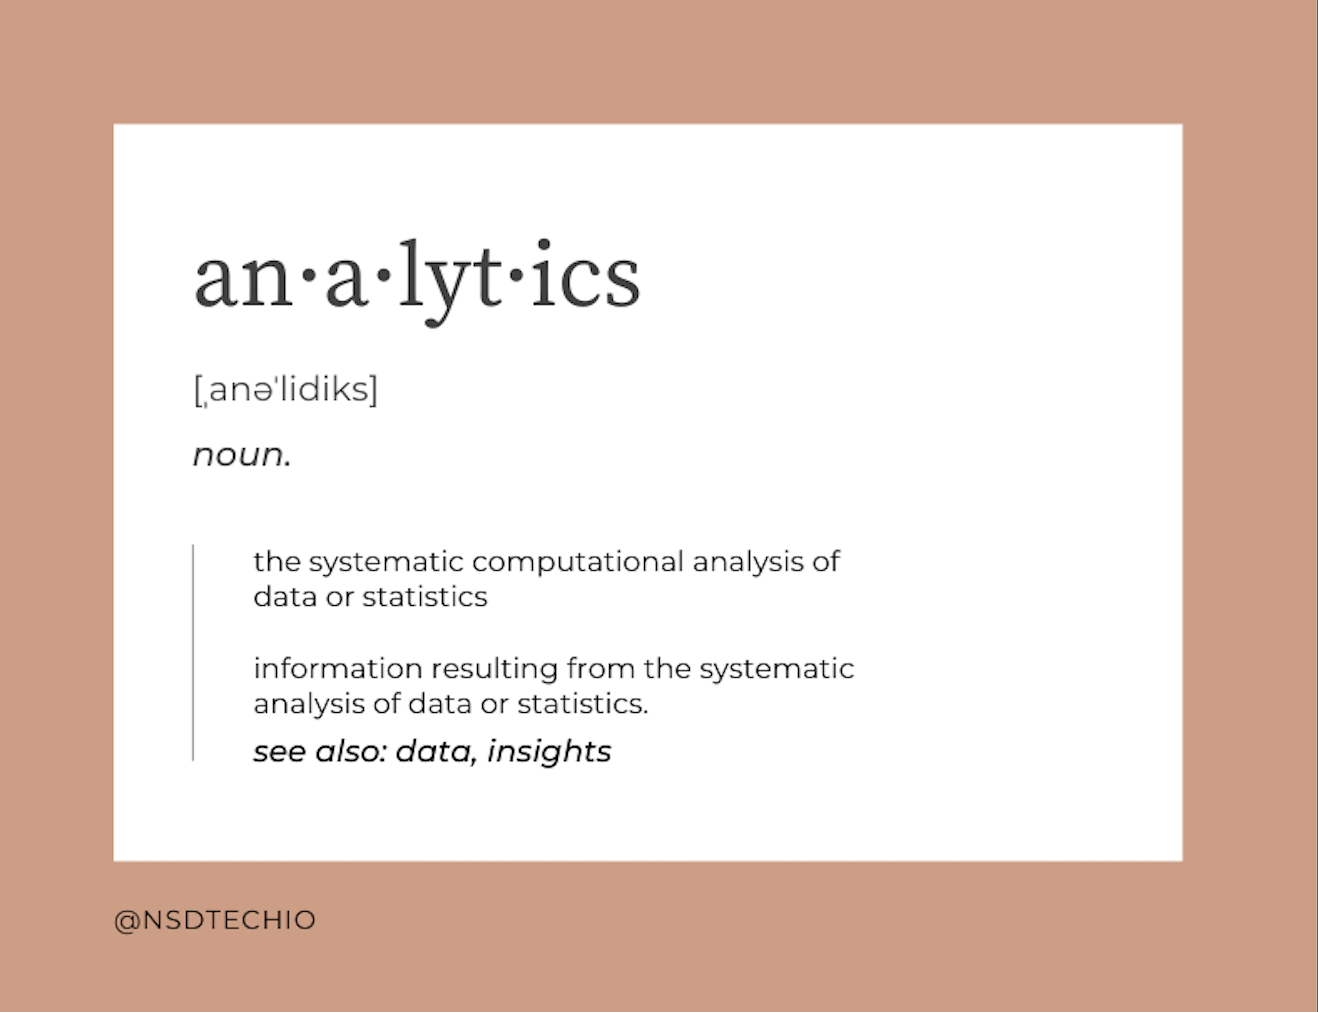 dictionary image of the word analytics